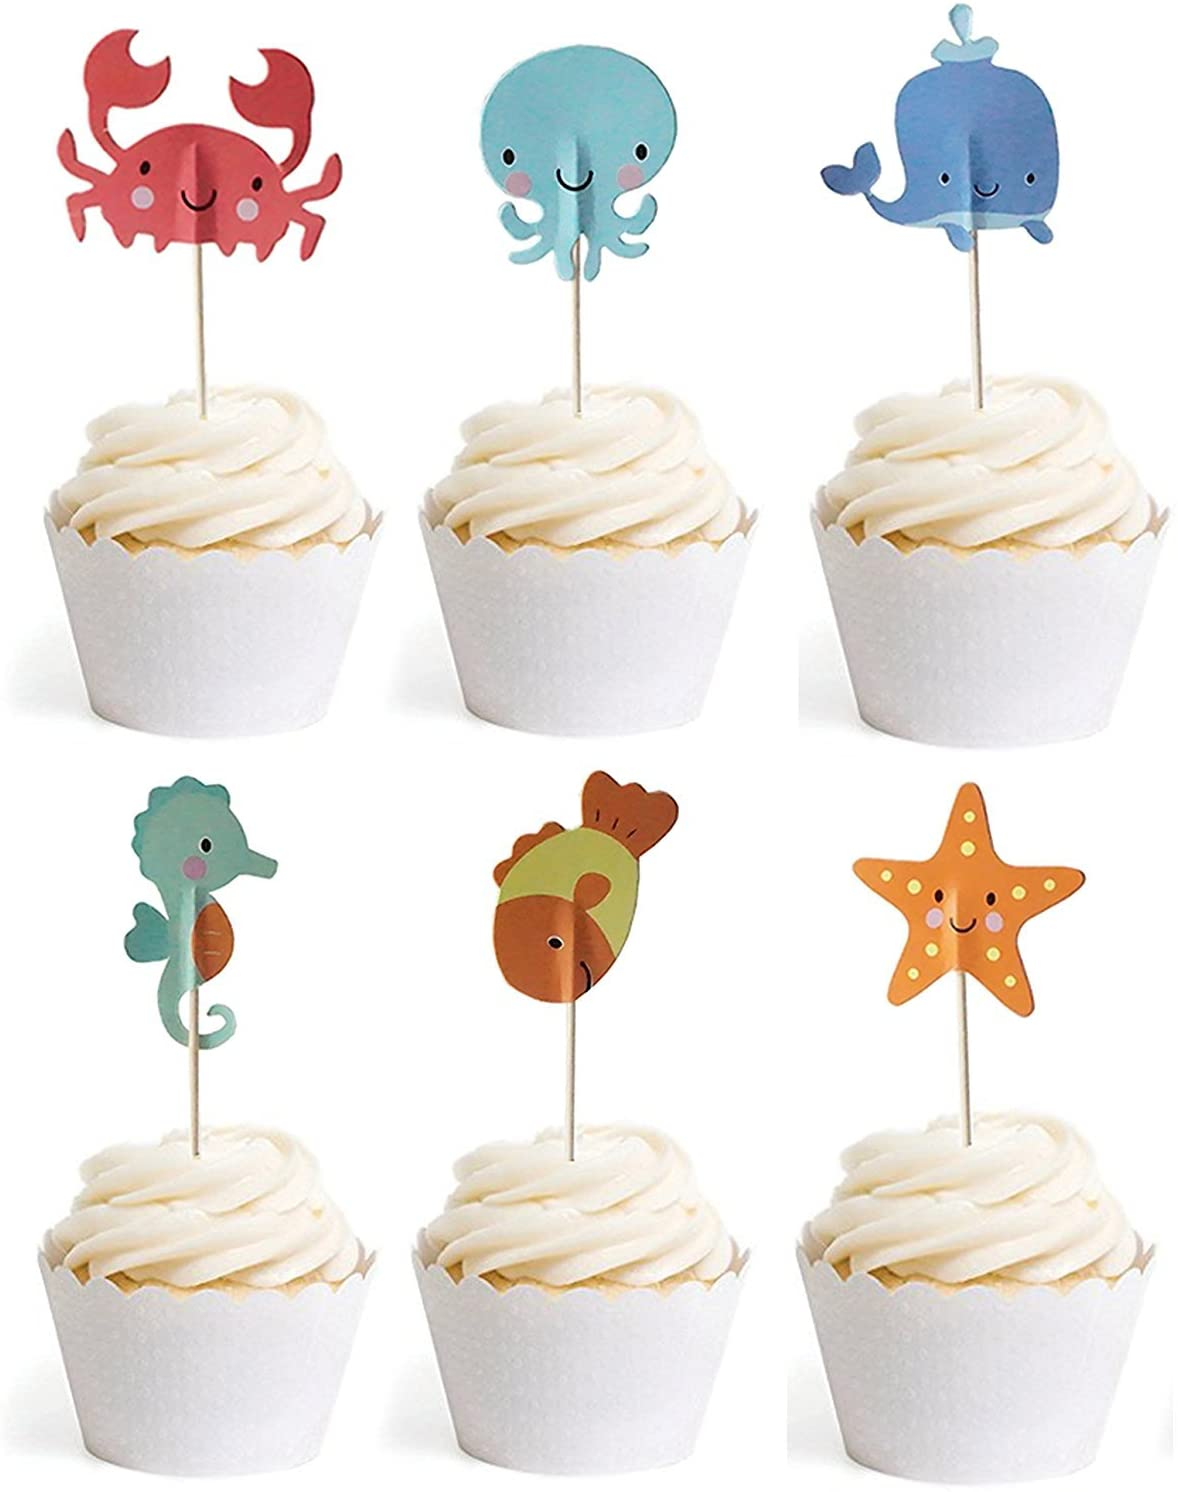 Bilipala Ocean Sea Animal Creature Fish Starfish Whale Octopus Crab Sea Horse Cake Cupcake Topper Picks for Party Decorations, 24 Counts